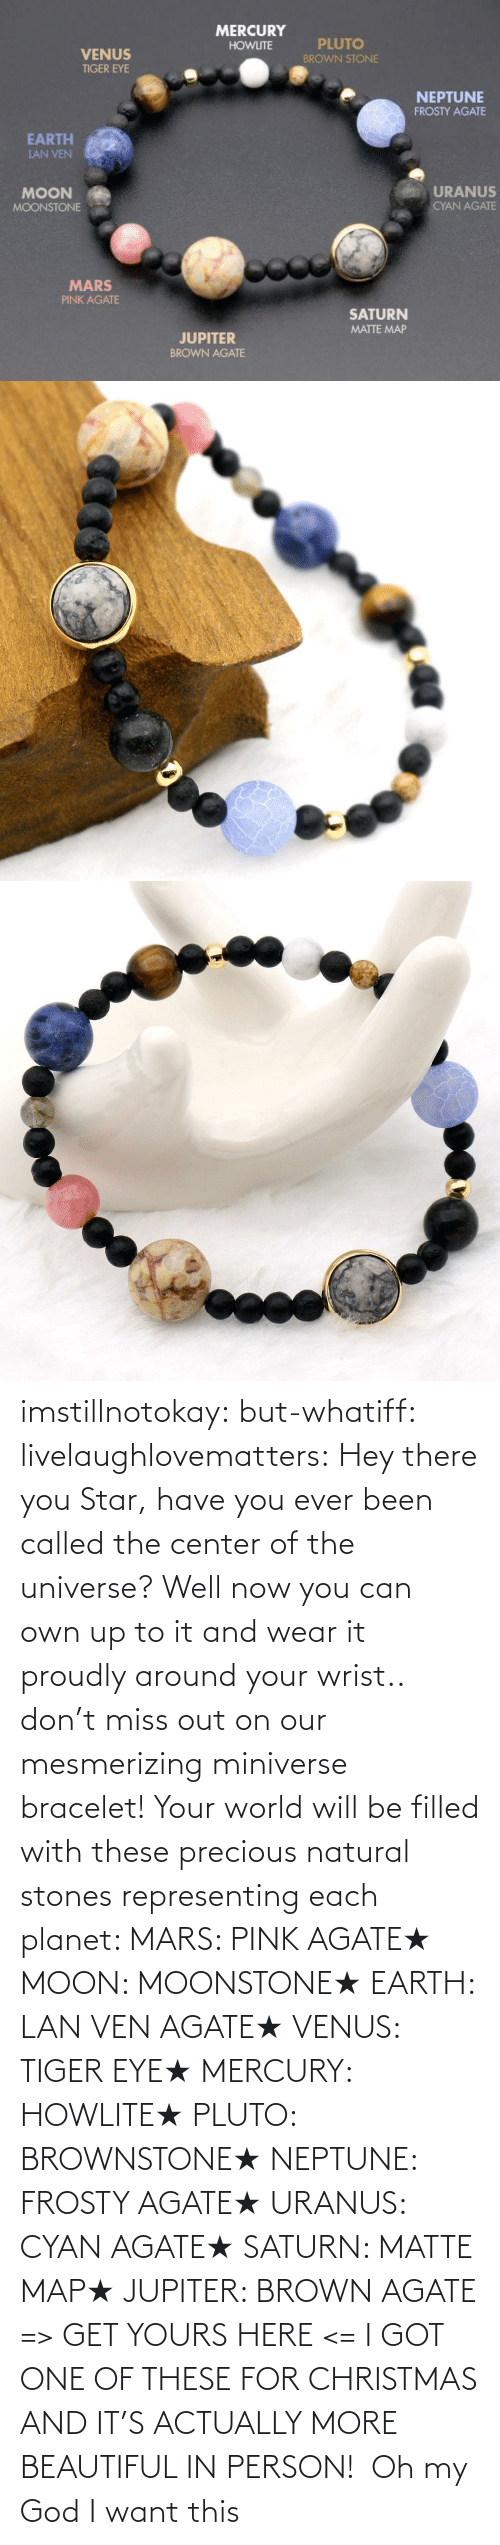 map: imstillnotokay: but-whatiff:  livelaughlovematters:  Hey there you Star, have you ever been called the center of the universe? Well now you can own up to it and wear it proudly around your wrist.. don't miss out on our mesmerizing miniverse bracelet! Your world will be filled with these precious natural stones representing each planet:  MARS: PINK AGATE★ MOON: MOONSTONE★ EARTH: LAN VEN AGATE★ VENUS: TIGER EYE★ MERCURY: HOWLITE★ PLUTO: BROWNSTONE★ NEPTUNE: FROSTY AGATE★ URANUS: CYAN AGATE★ SATURN: MATTE MAP★ JUPITER: BROWN AGATE => GET YOURS HERE <=  I GOT ONE OF THESE FOR CHRISTMAS AND IT'S ACTUALLY MORE BEAUTIFUL IN PERSON!     Oh my God I want this